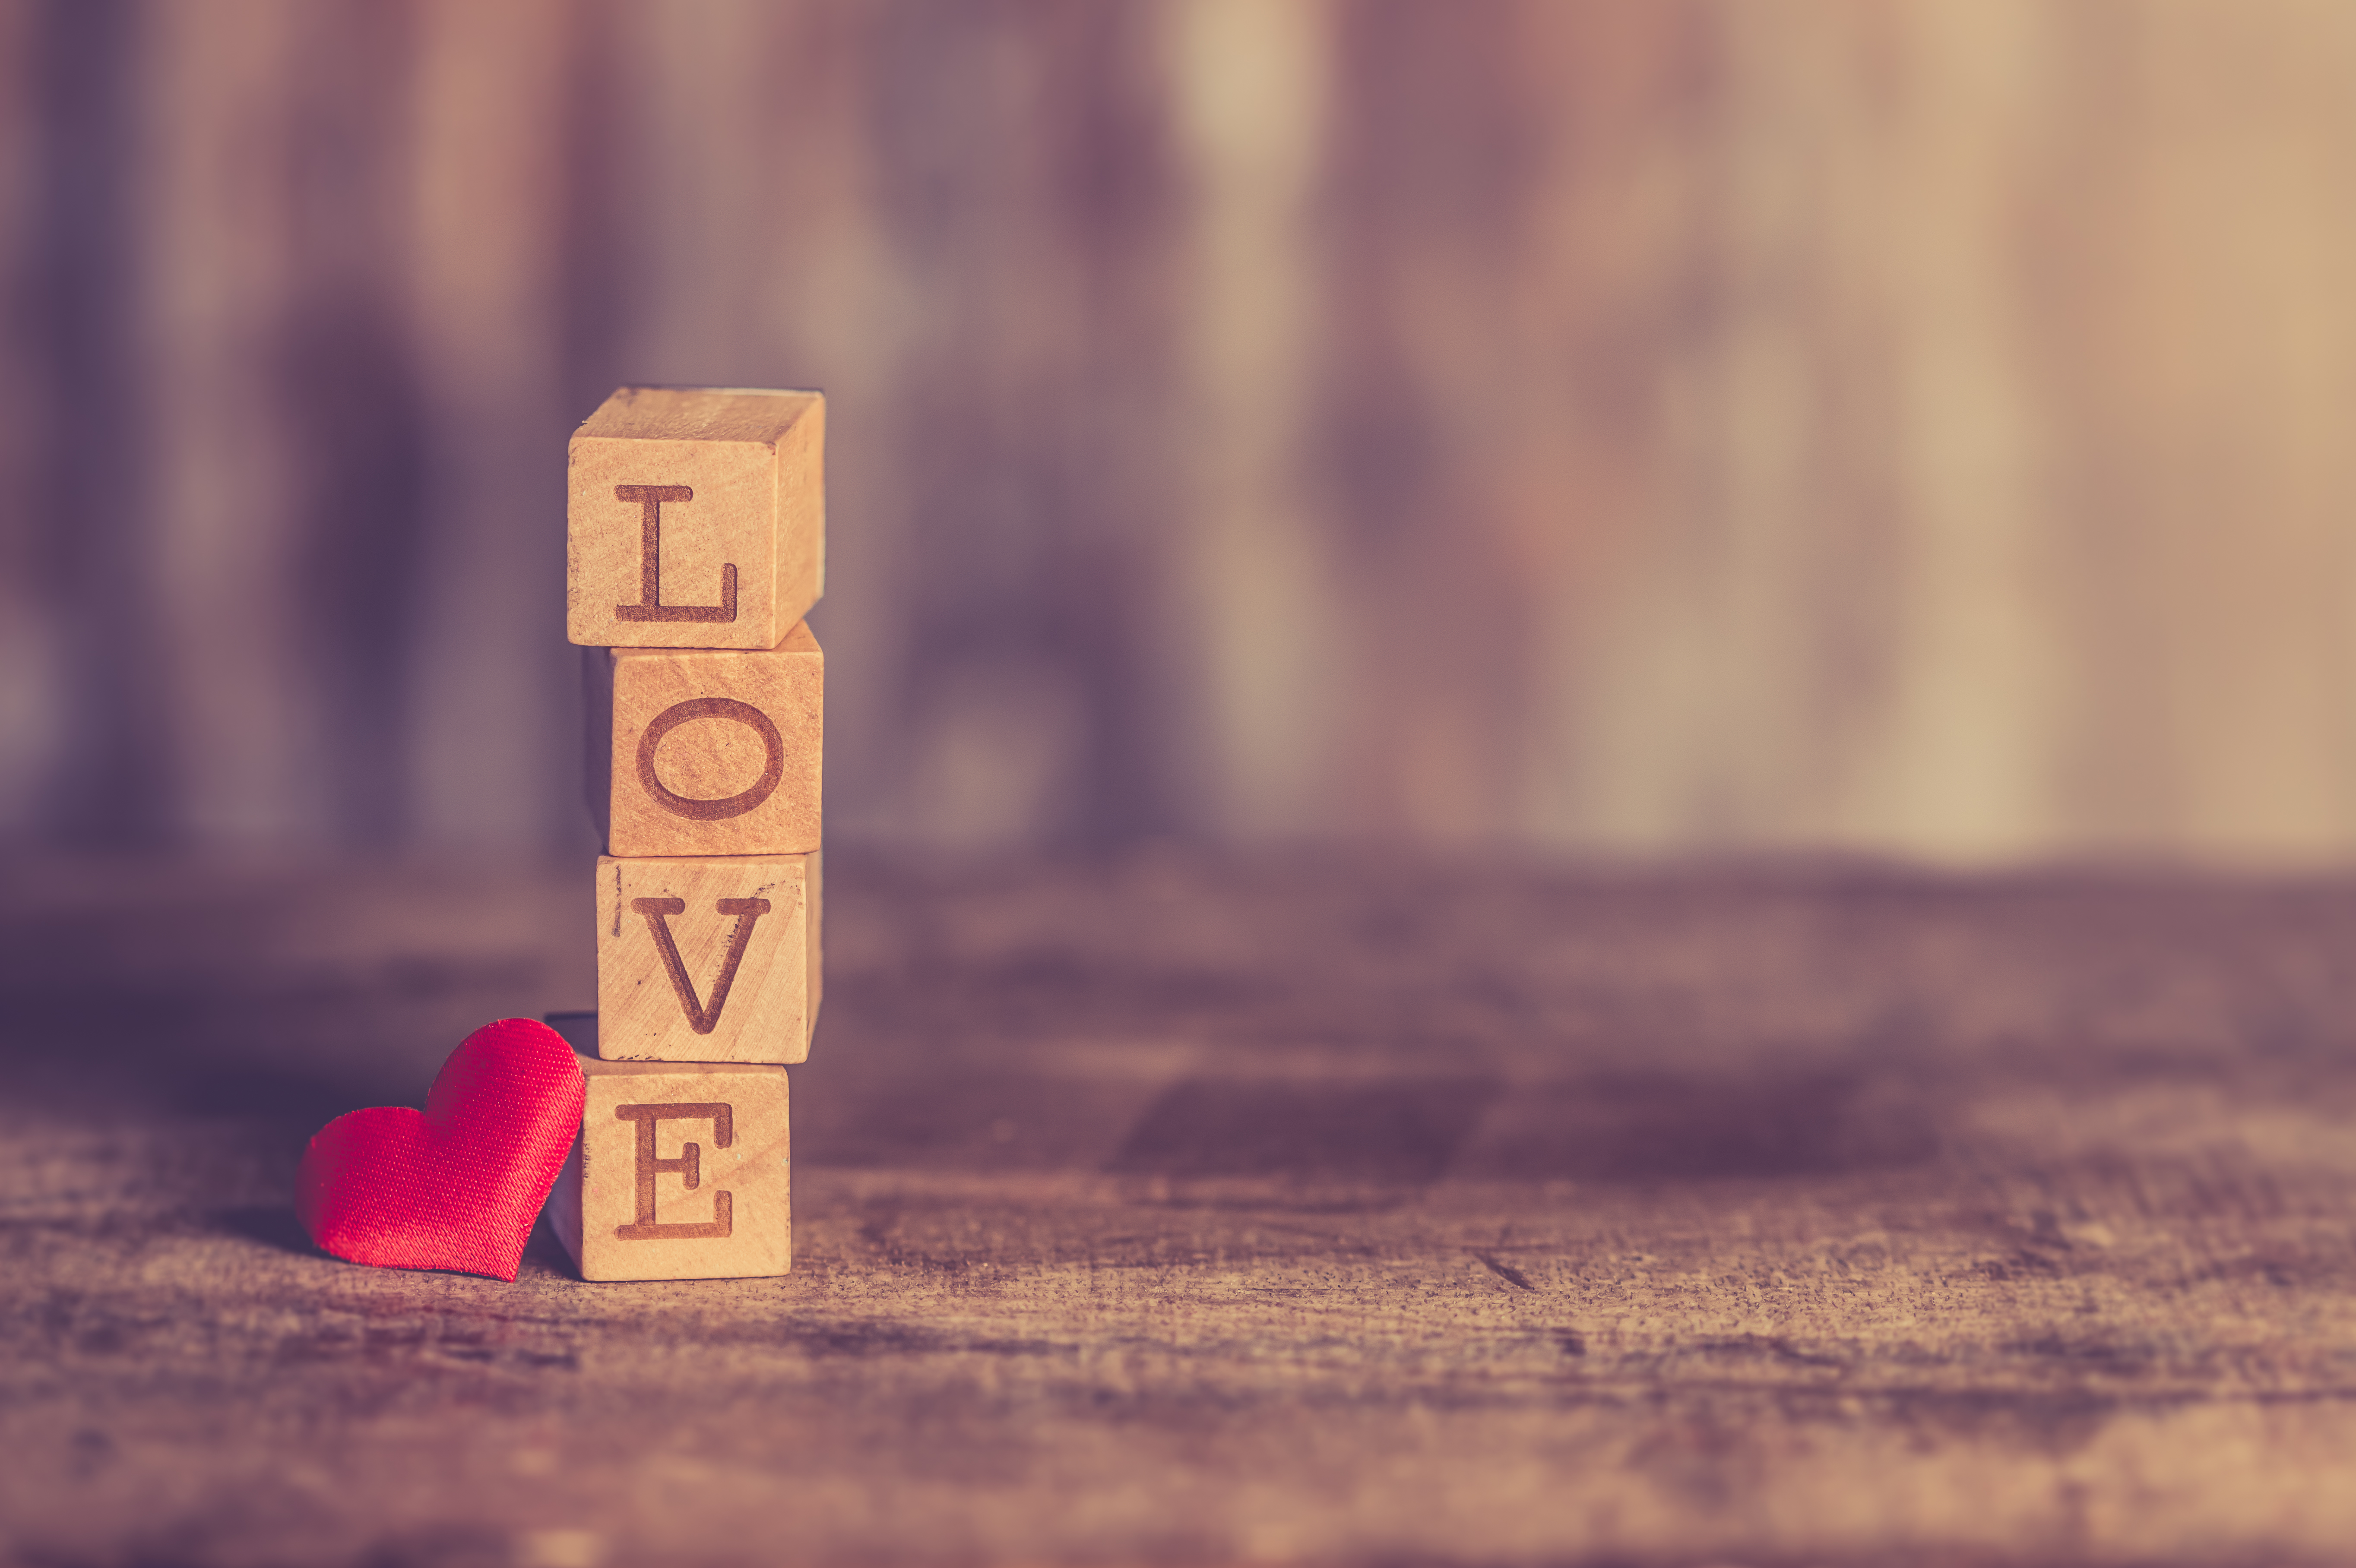 145679 download wallpaper Words, Cubes, Love, Heart screensavers and pictures for free